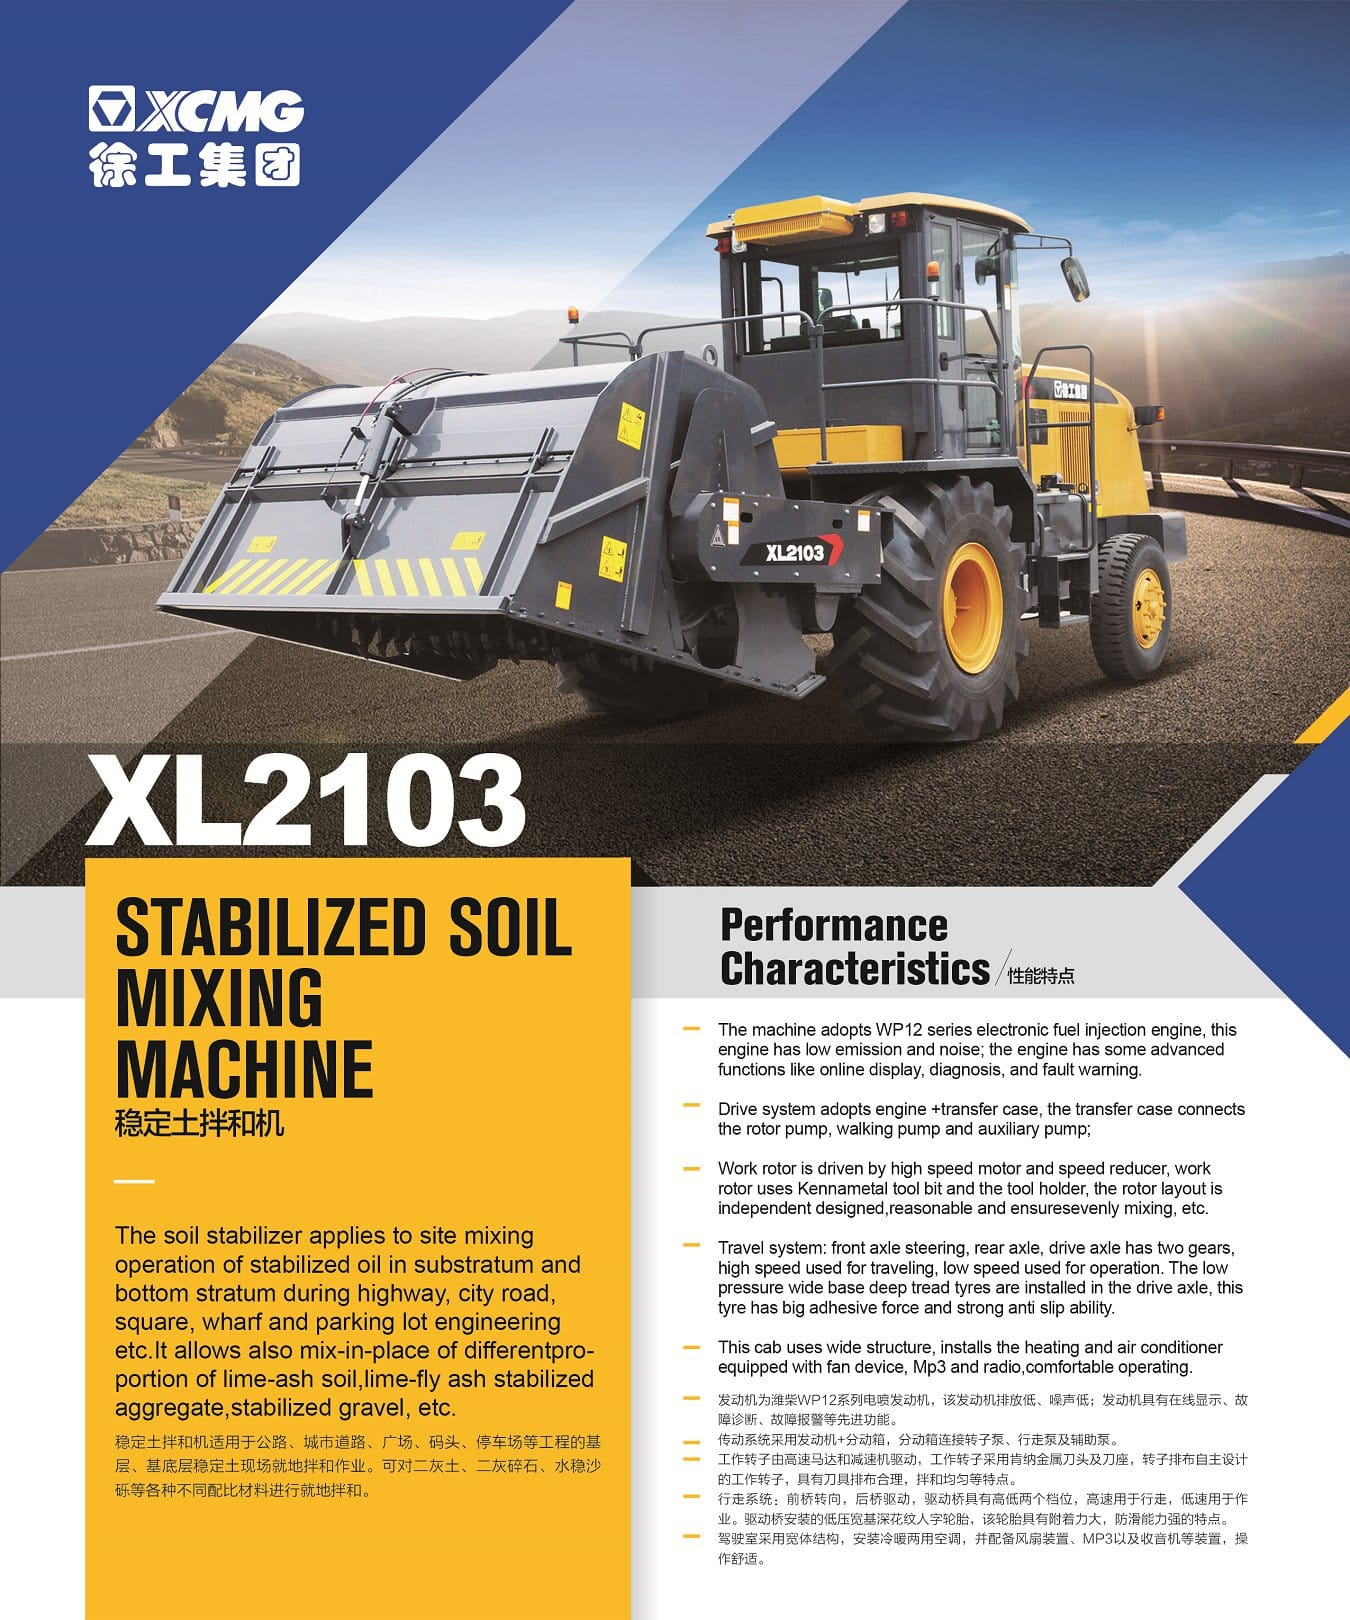 XCMG Official Road Stabilized Soil Mixing Machine XL2103 For Sale